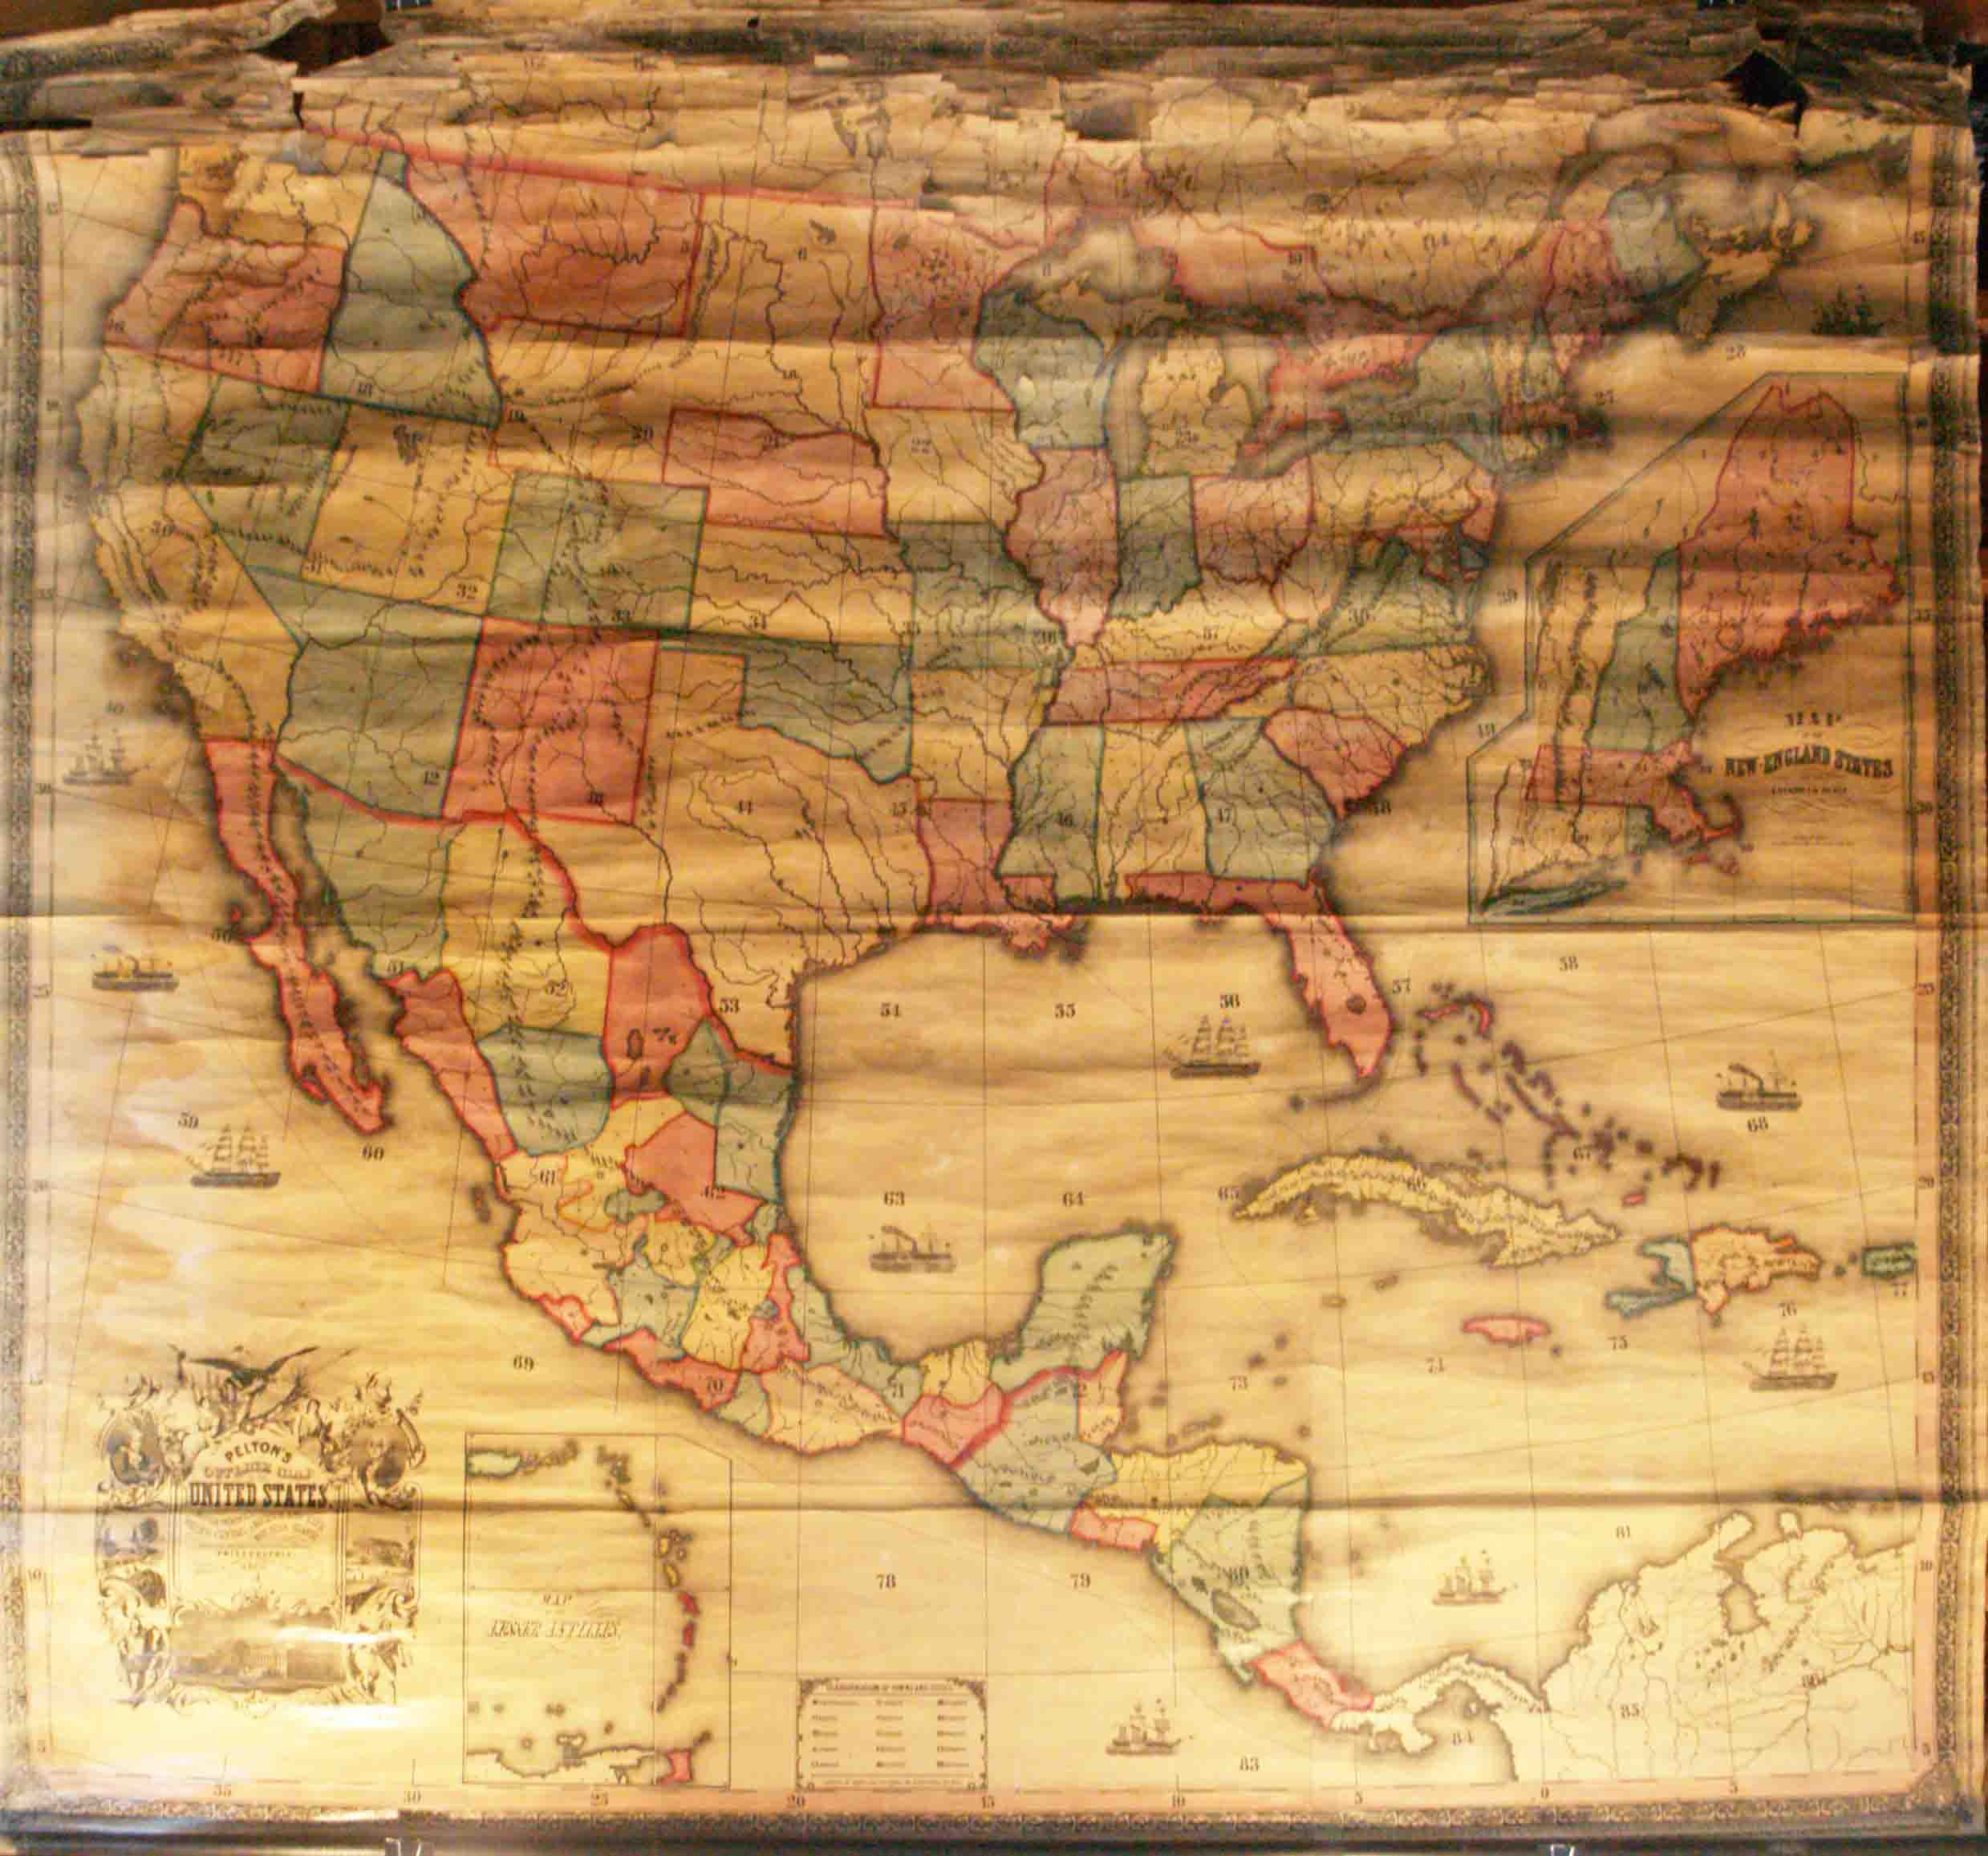 Pelton's Outline Map of the United States, British Provinces ... on u s military history central america map, federation of central america map, colonial latin america map, us and mexico map, central america caribbean map, physical regions of the united states map, blank us physical geography map, anglicanism england united states spread map, anglican church population map,